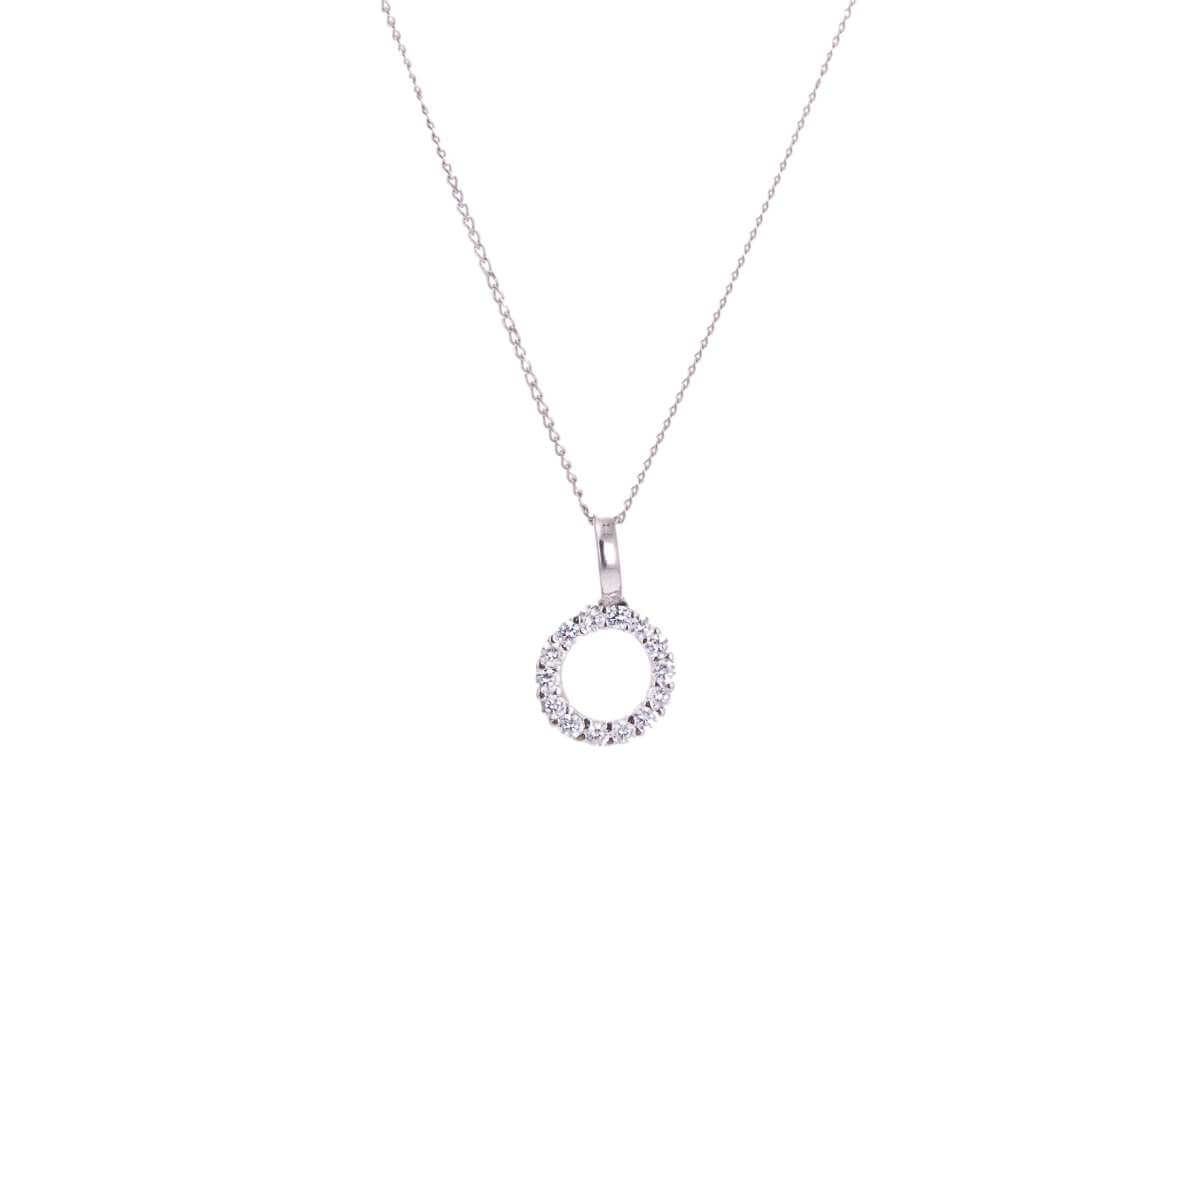 9ct White Gold CZ Karma Circle Necklace - 16 - 20 Inches